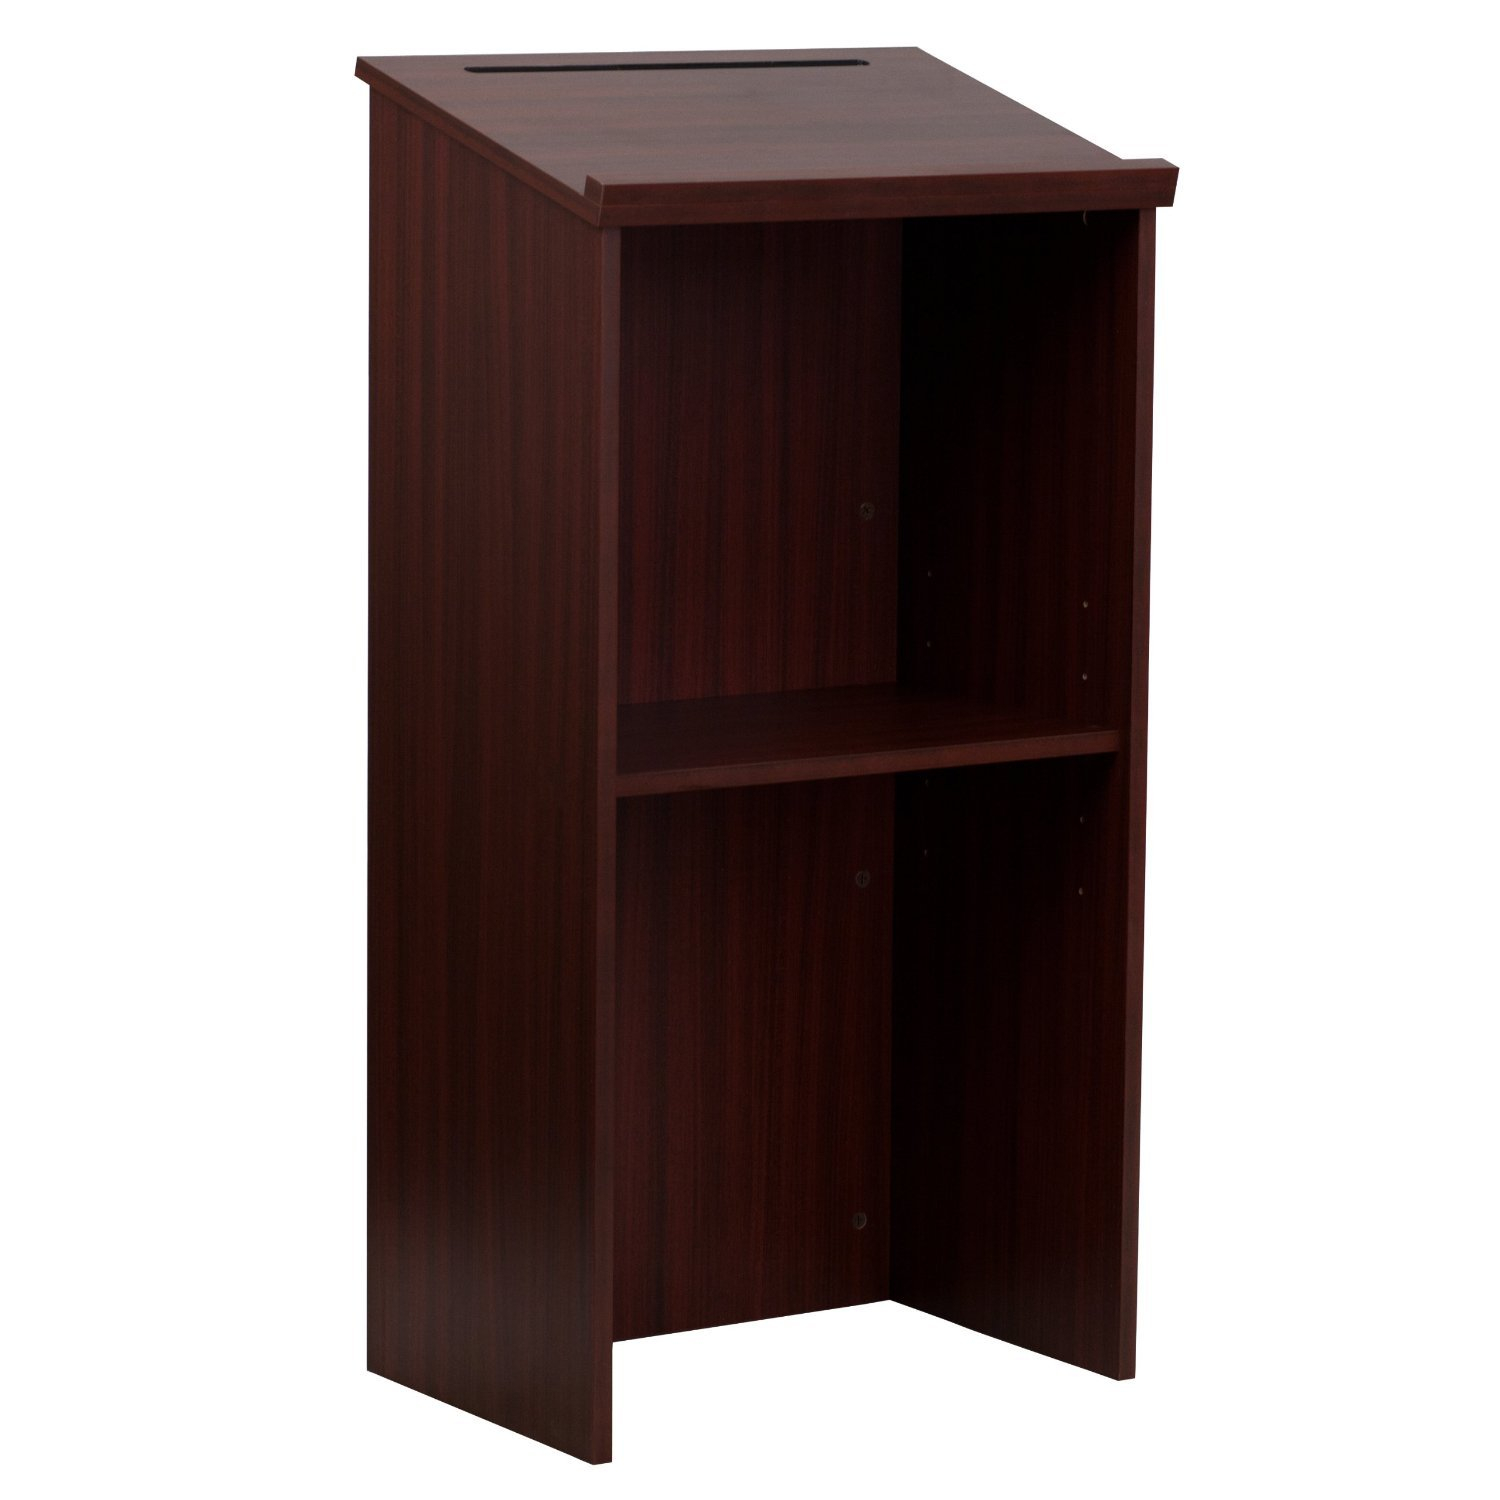 AdirOffice Stand up, Floor-standing Podium, Lectern with Adjustable Shelf and Pen/Pencil Tray (Mahogany) 661-01